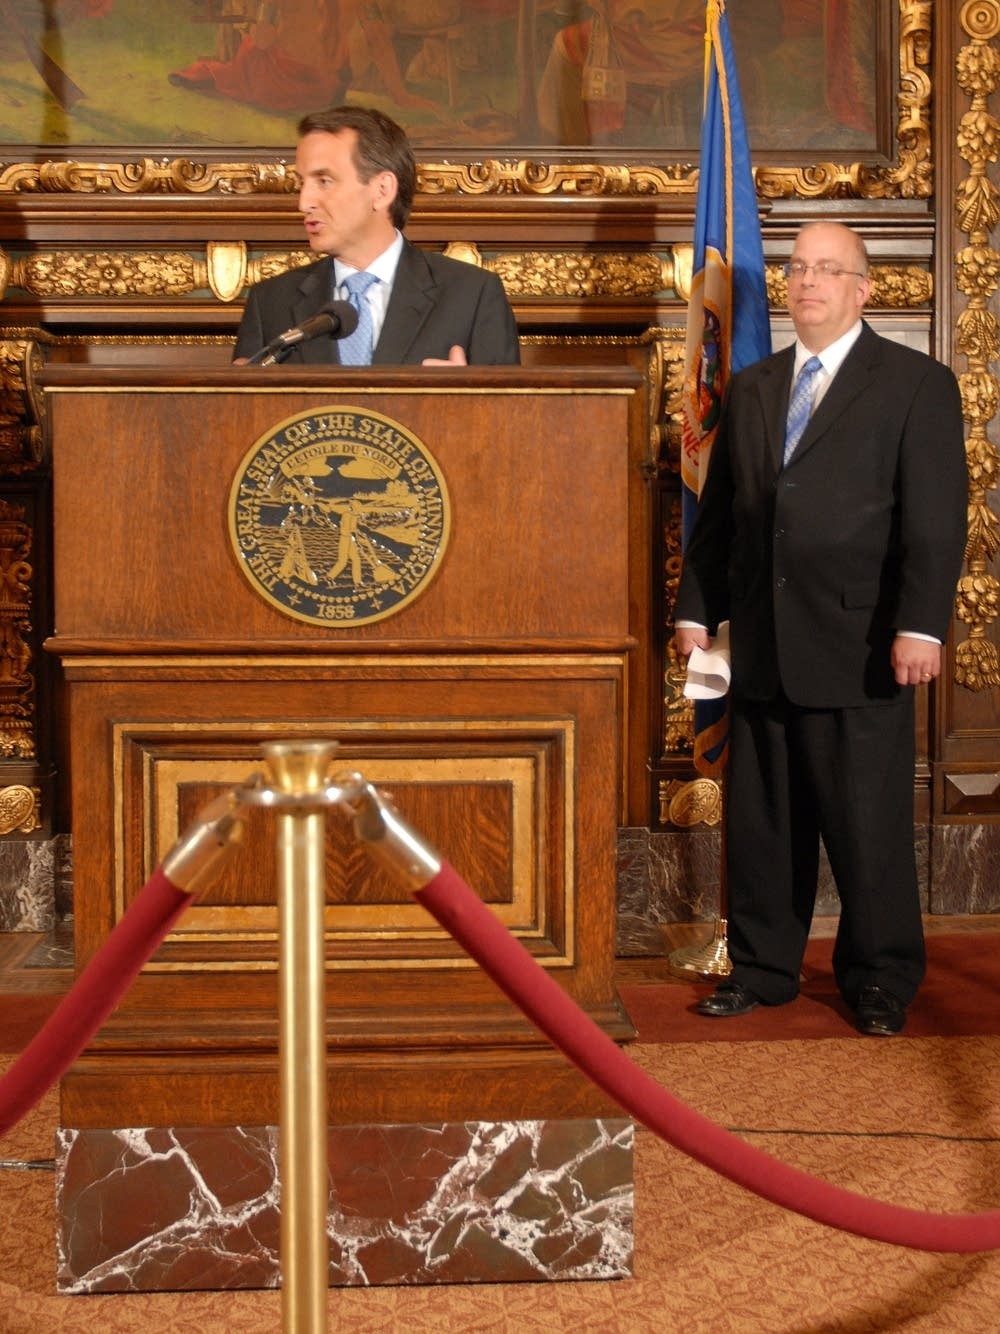 Gov Pawlenty announces budget cuts